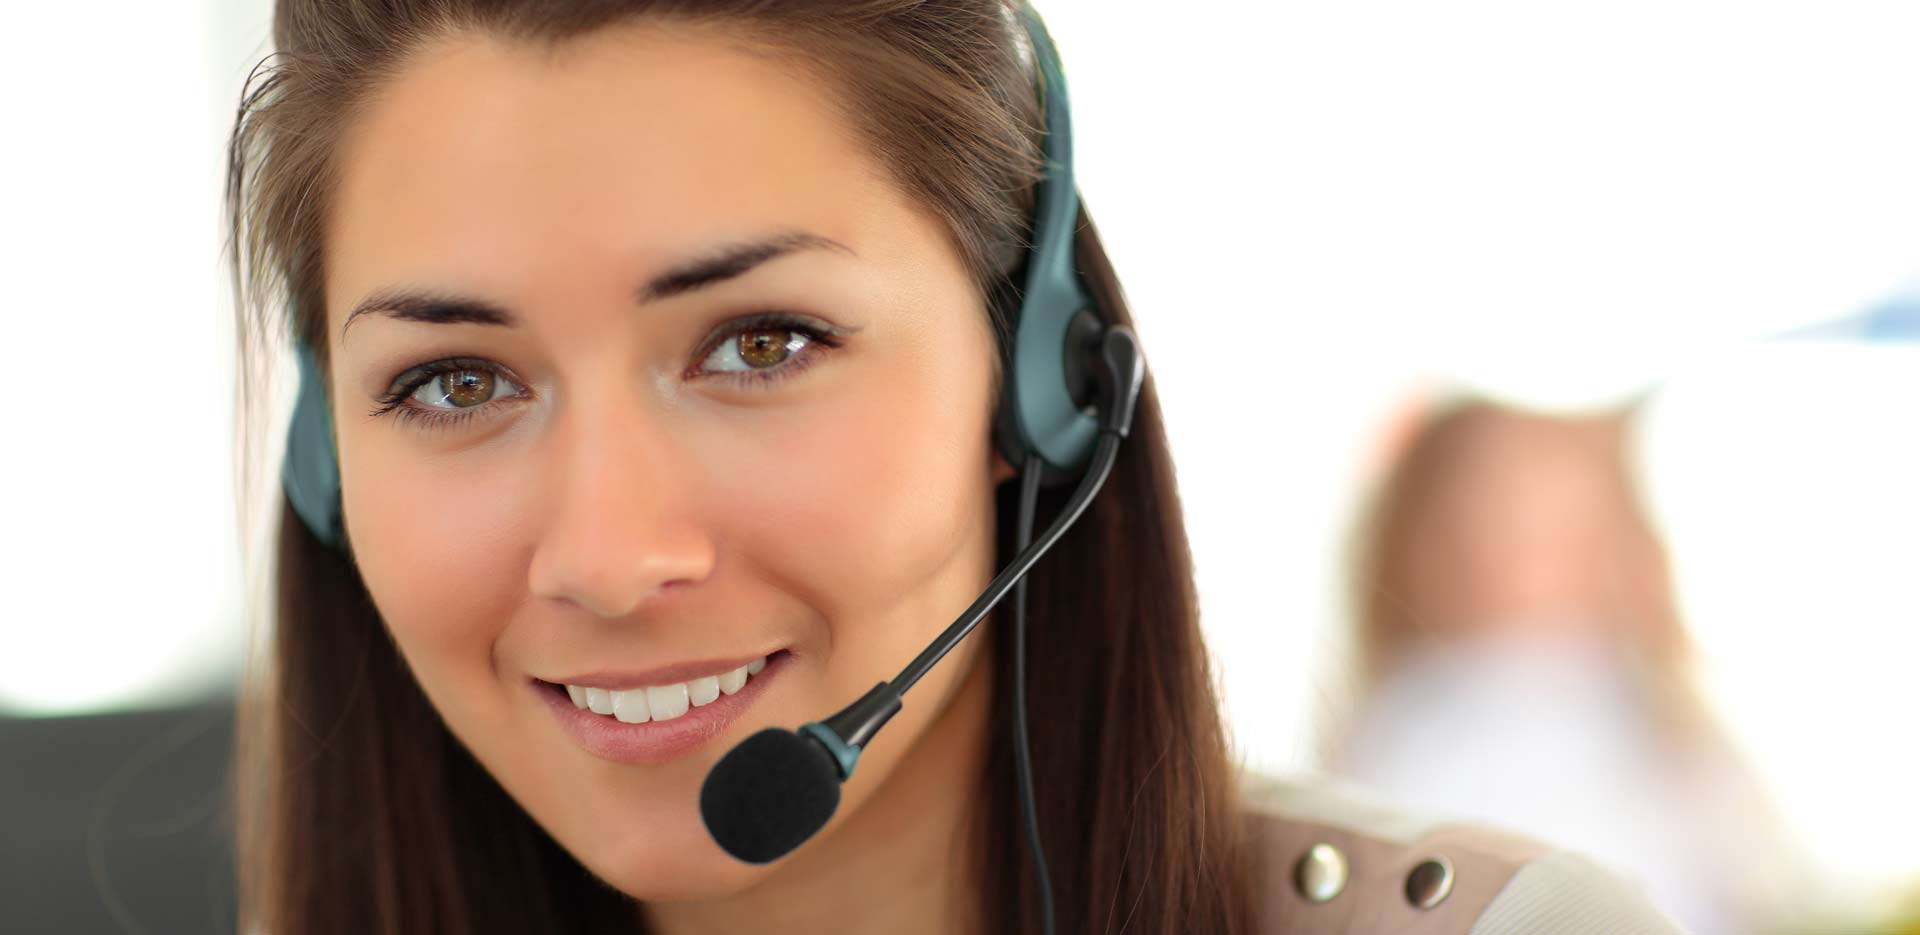 Communications Products & Services Customer Service